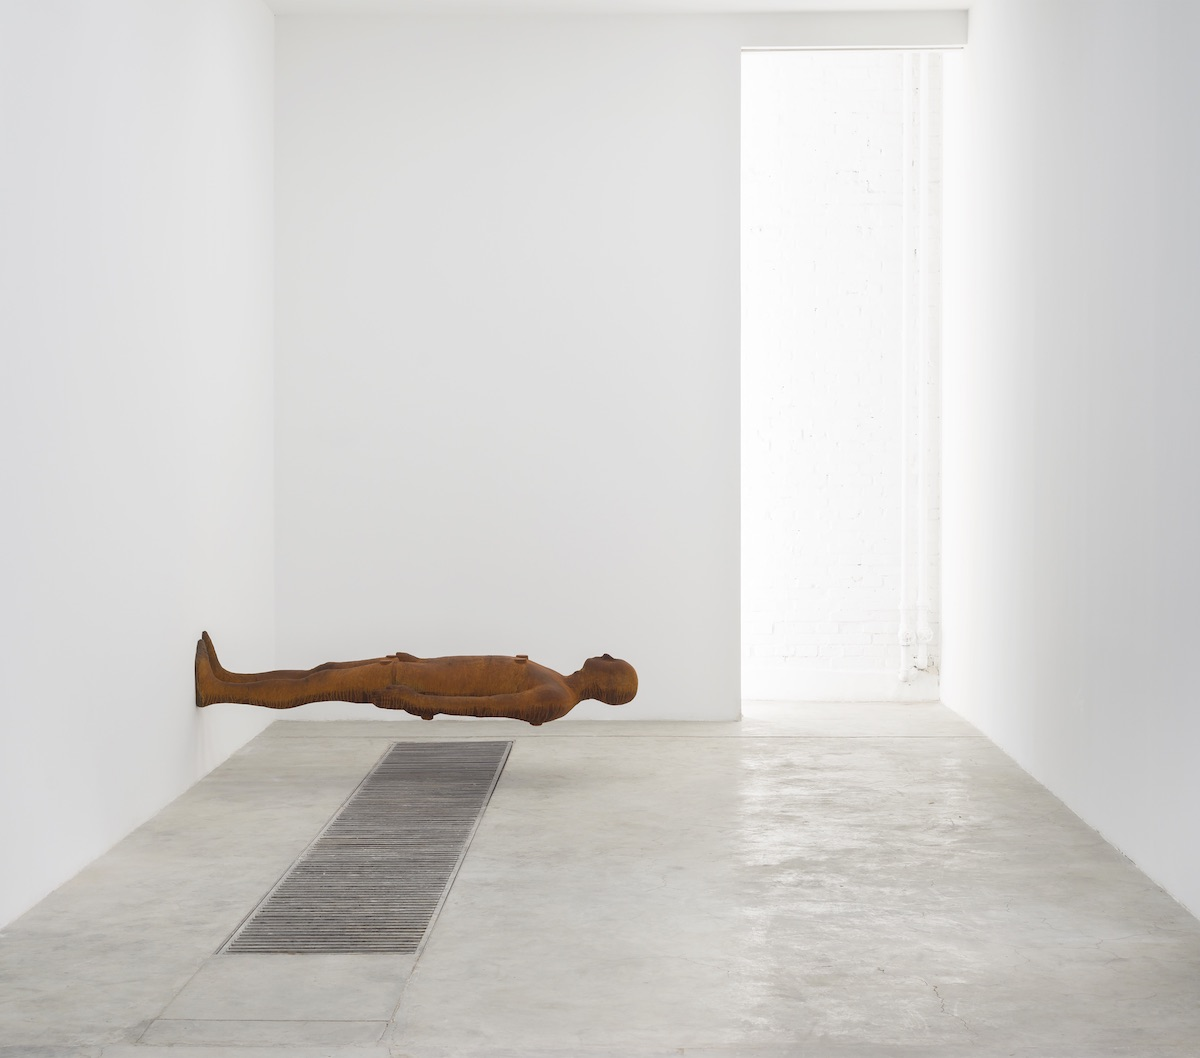 Installation view of Antony Gormley, SUBJECT, Kettle's Yard